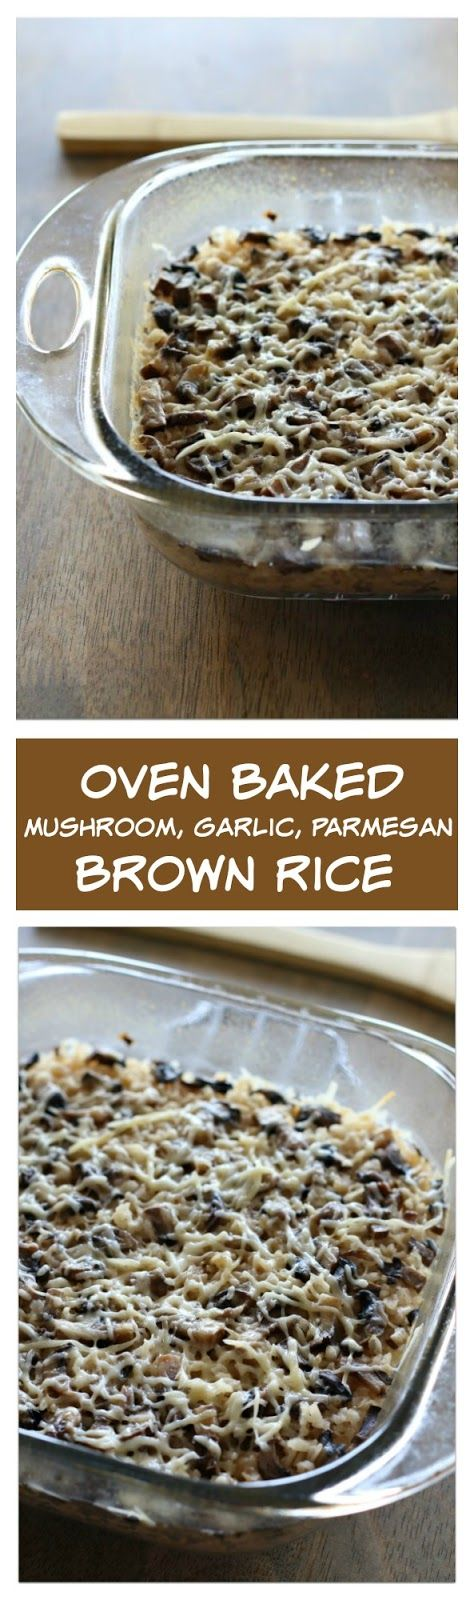 I'm just super pumped about this brown rice that you can make in the oven! I had…